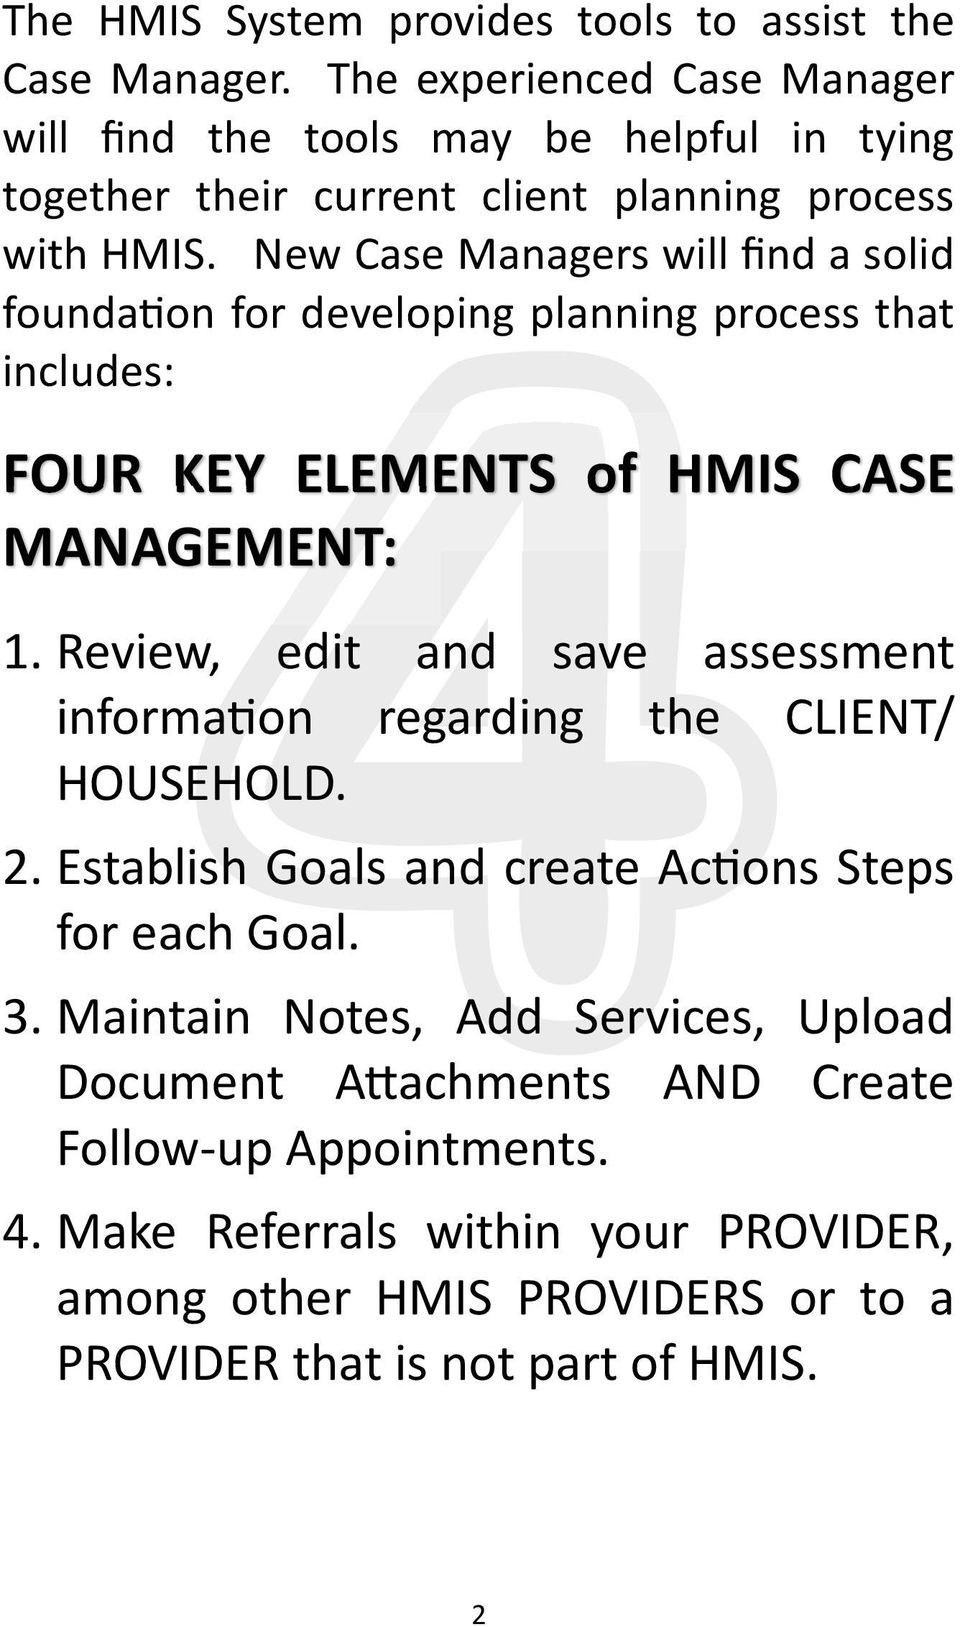 New Case Managers will find a solid founda on for developing planning process that includes: FOUR KEY ELEMENTS of HMIS CASE MANAGEMENT: 1.